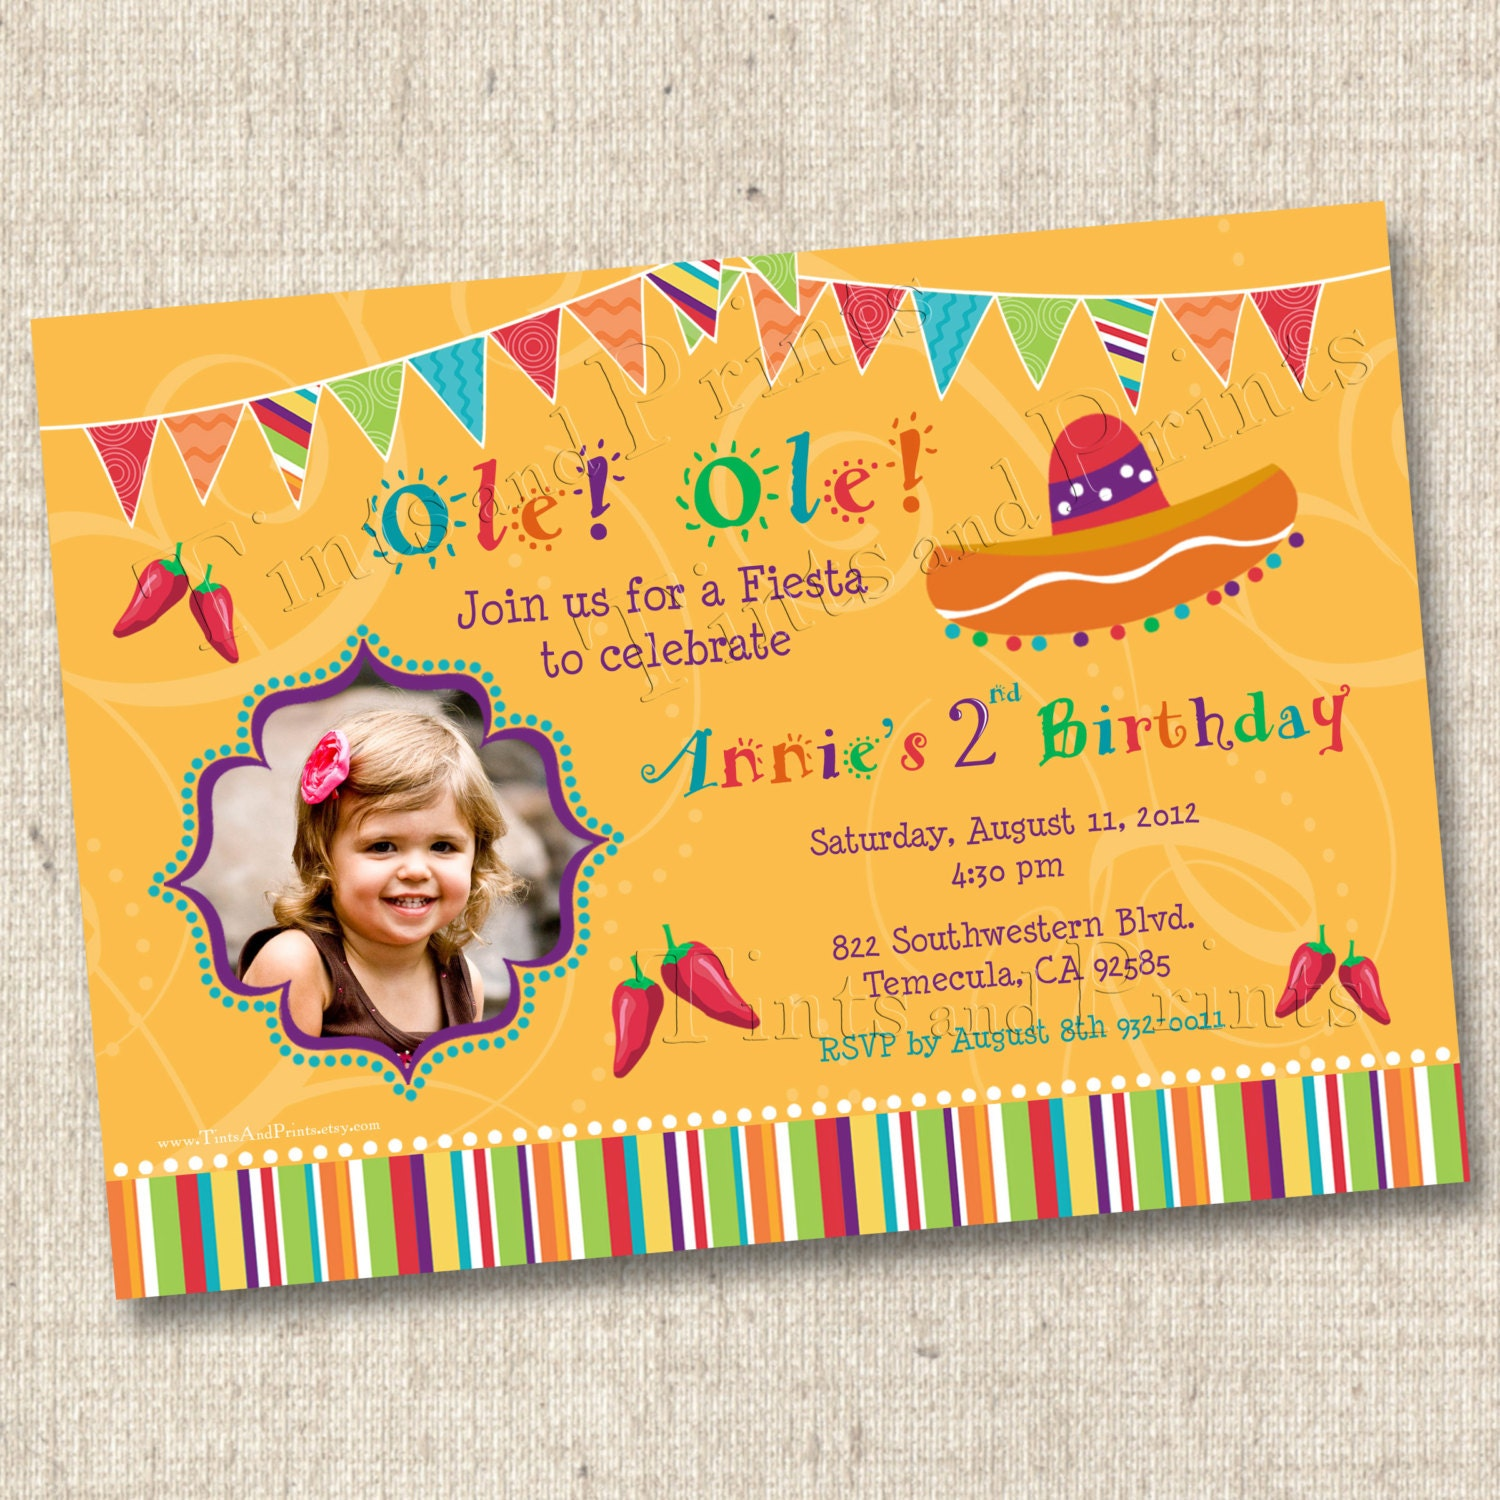 Ole ole fiesta custom birthday party photo by tintsandprints for Etsy engagement party invites